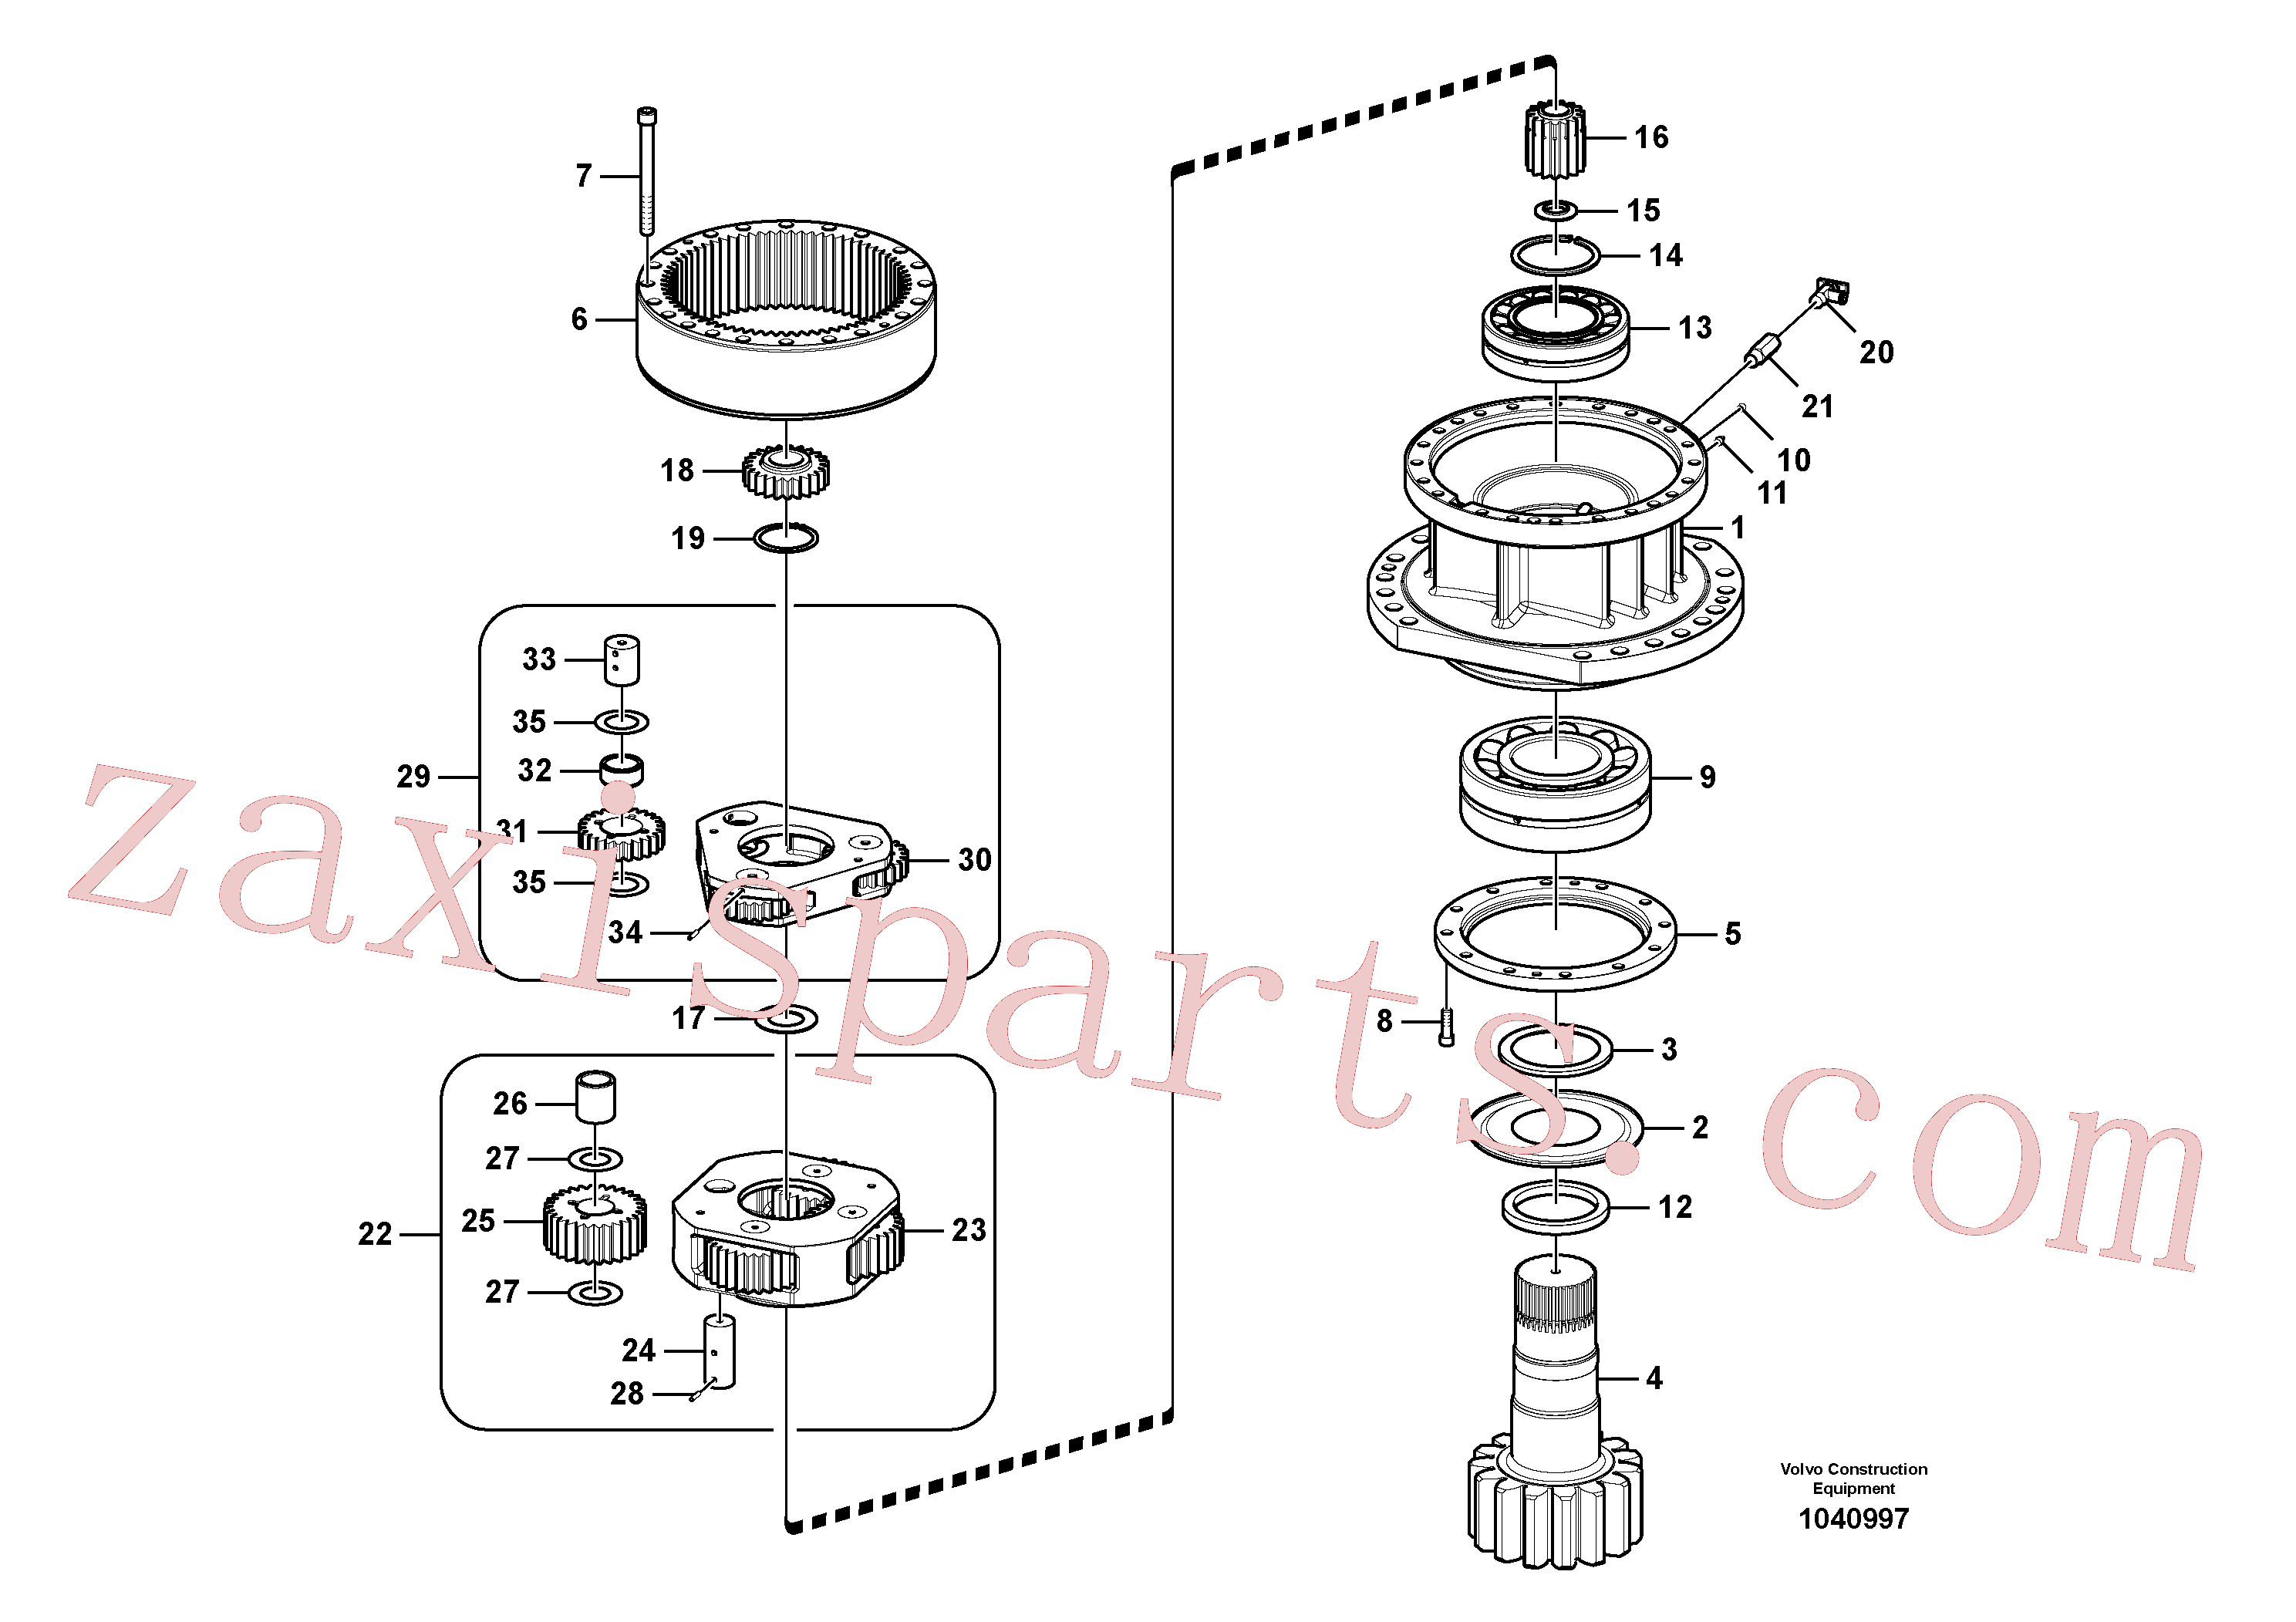 VOE14547277 for Volvo Swing gearbox(1040997 assembly)